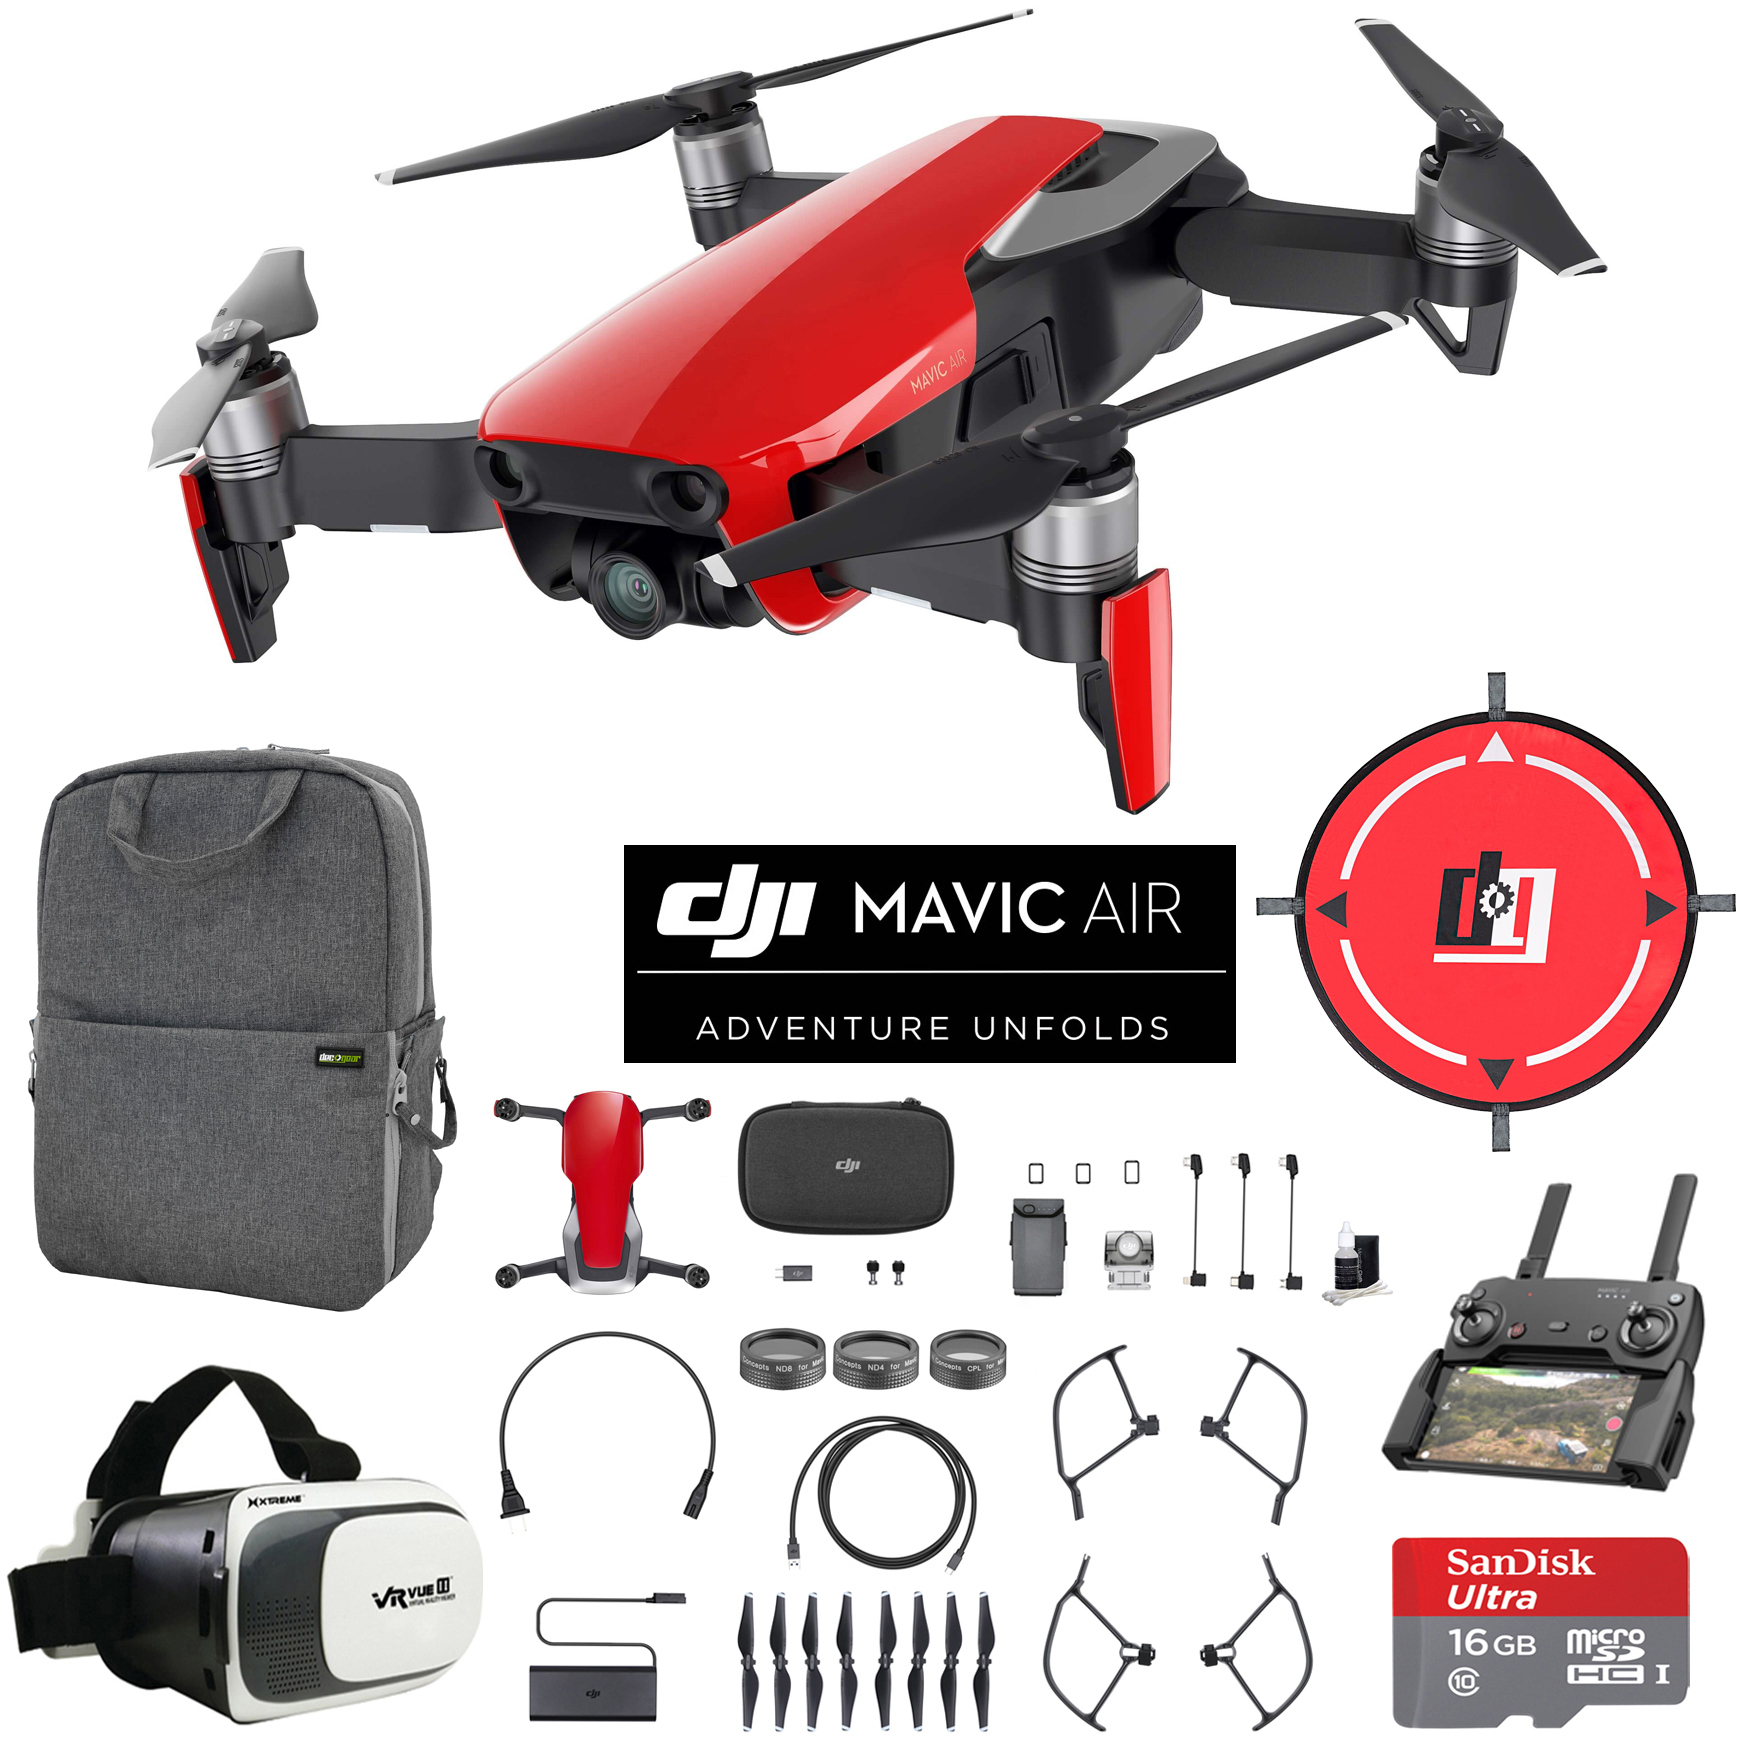 DJI Mavic Air (Flame Red) Drone Combo 4K Wi-Fi Quadcopter with Remote Controller Mobile Go Bundle with Backpack VR Goggles Landing Pad 16GB microSDHC Card and Filter Kit